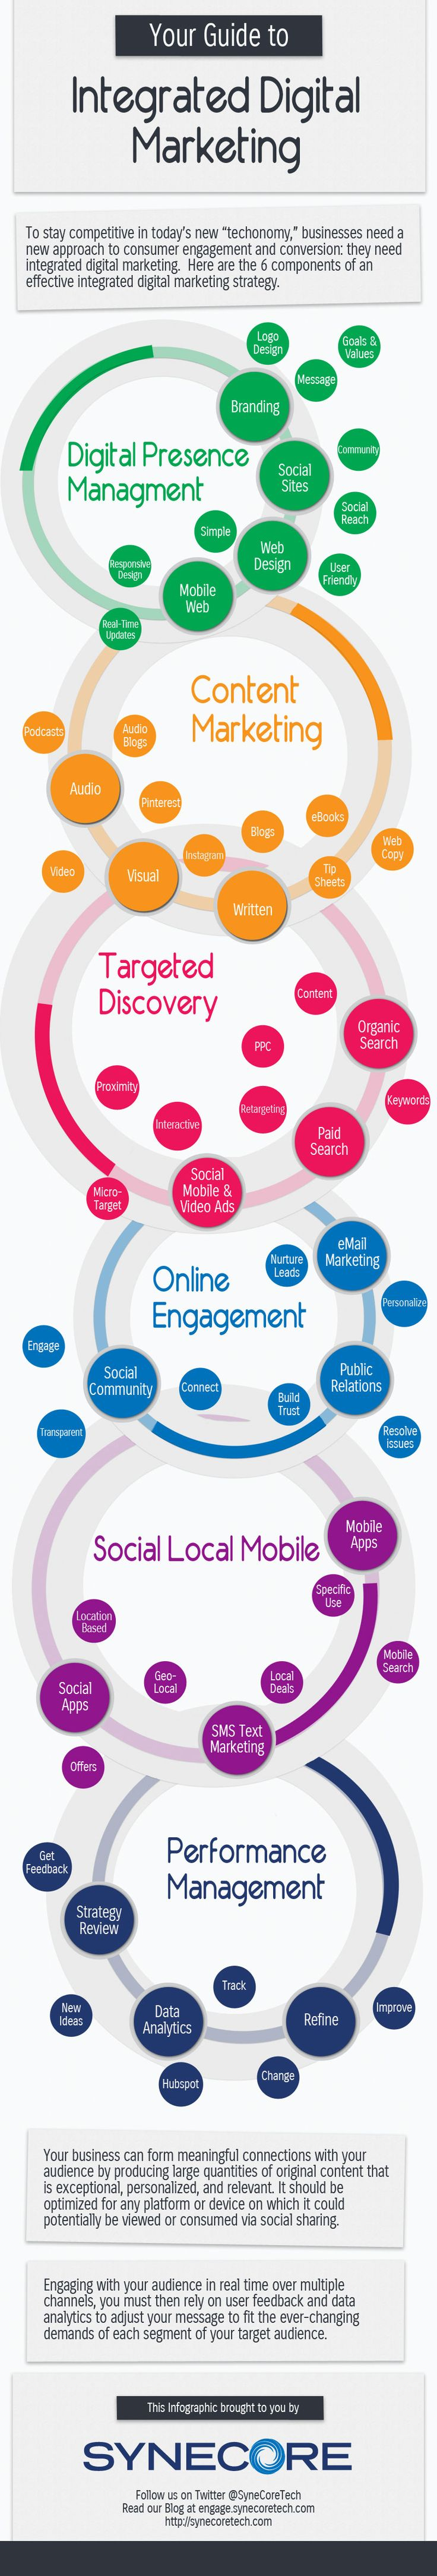 Guide d ntegration du Digital Marketing : 6 dimensions Presence (Digitale Presence Management) Contenus (Content Marketing) Ciblage (Targeted Discovery) Engagement (Online Engagement) SoLoMo (Social Local Mobile) Performance (Performance Management)